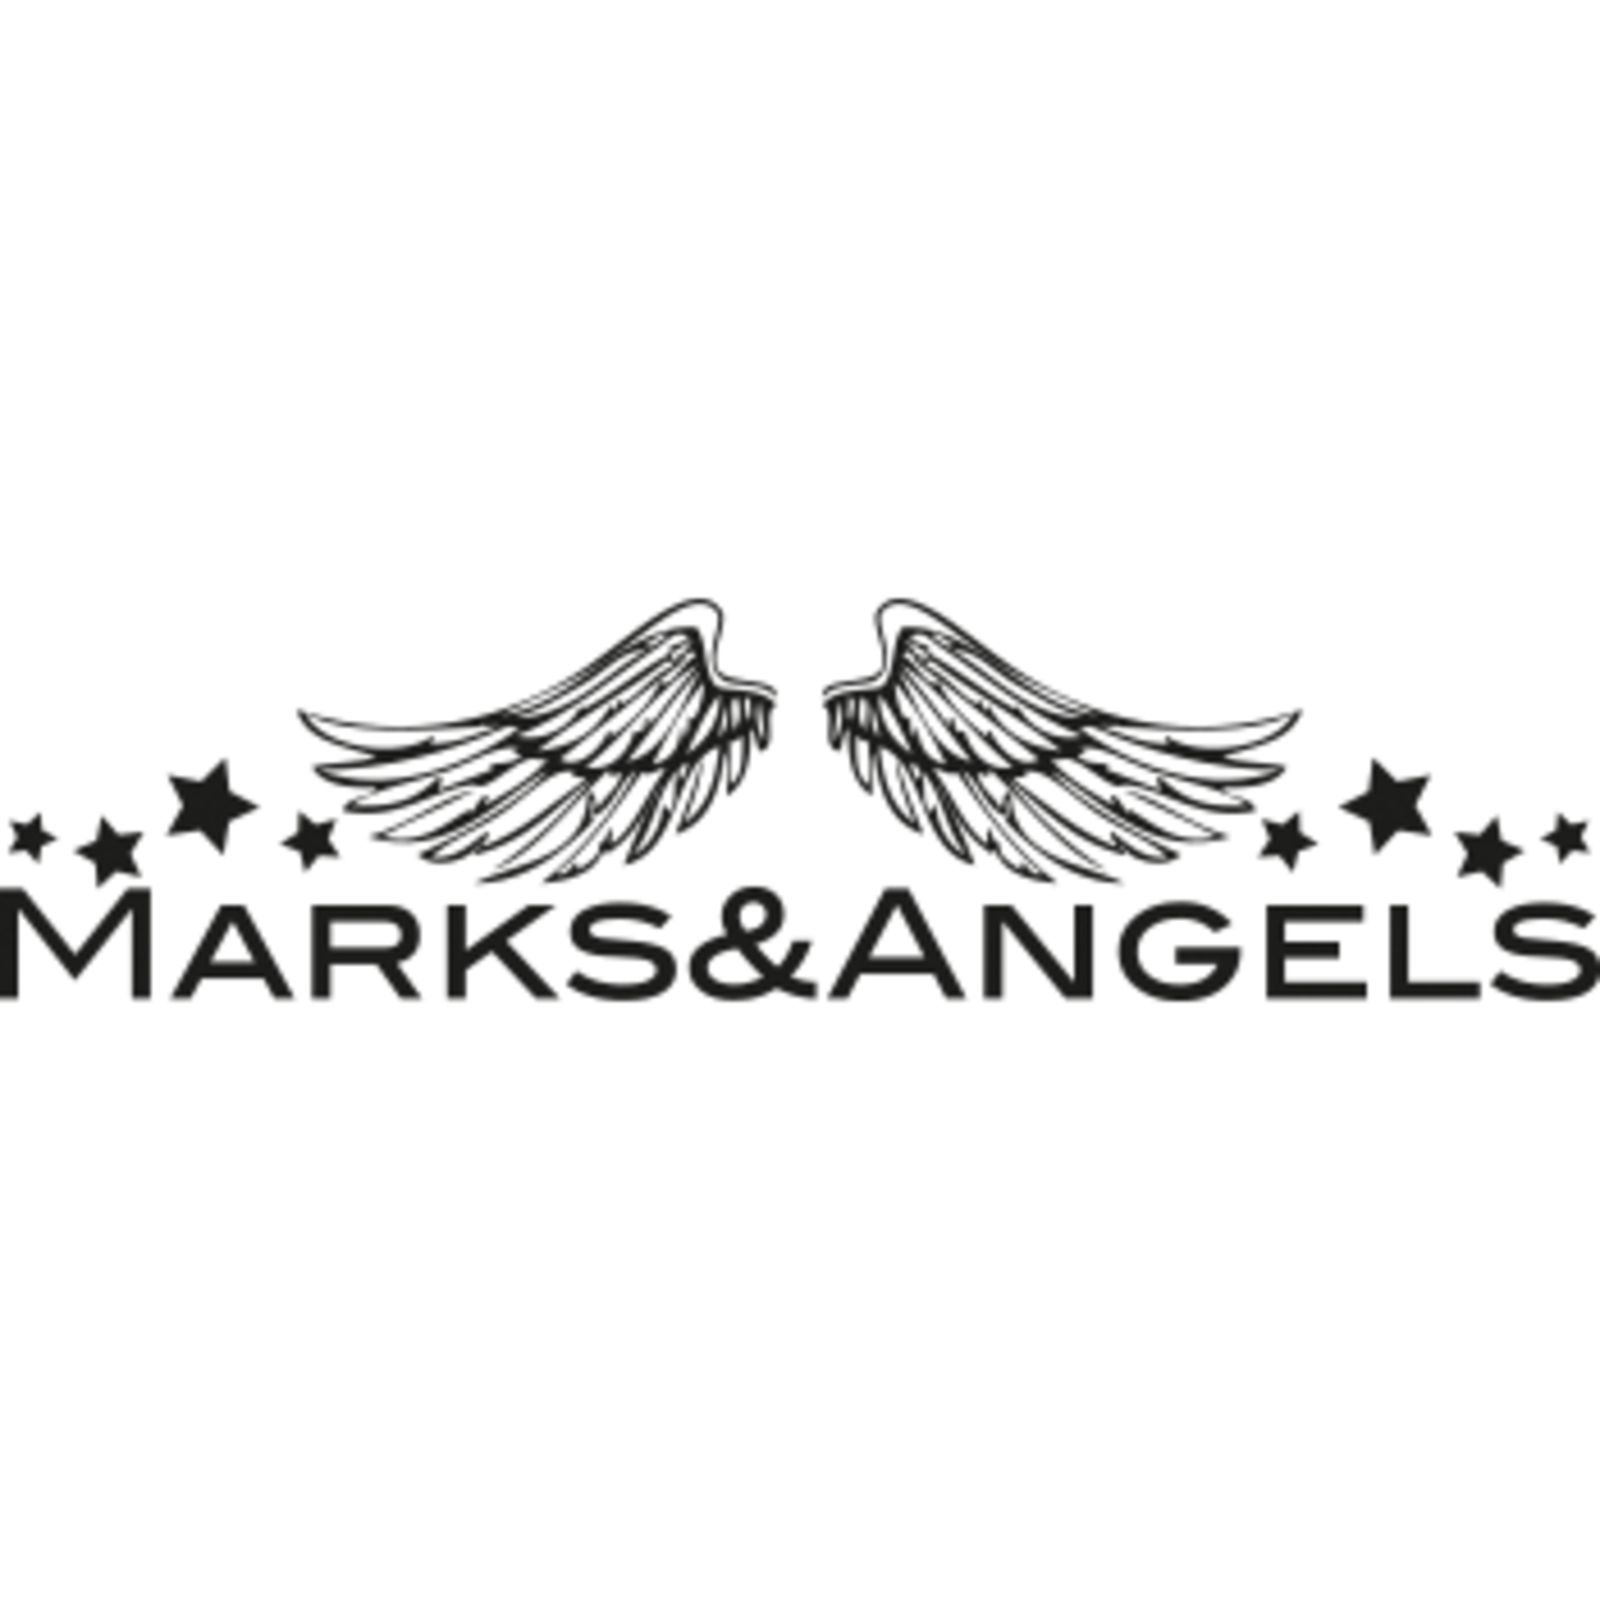 MARKS & ANGELS